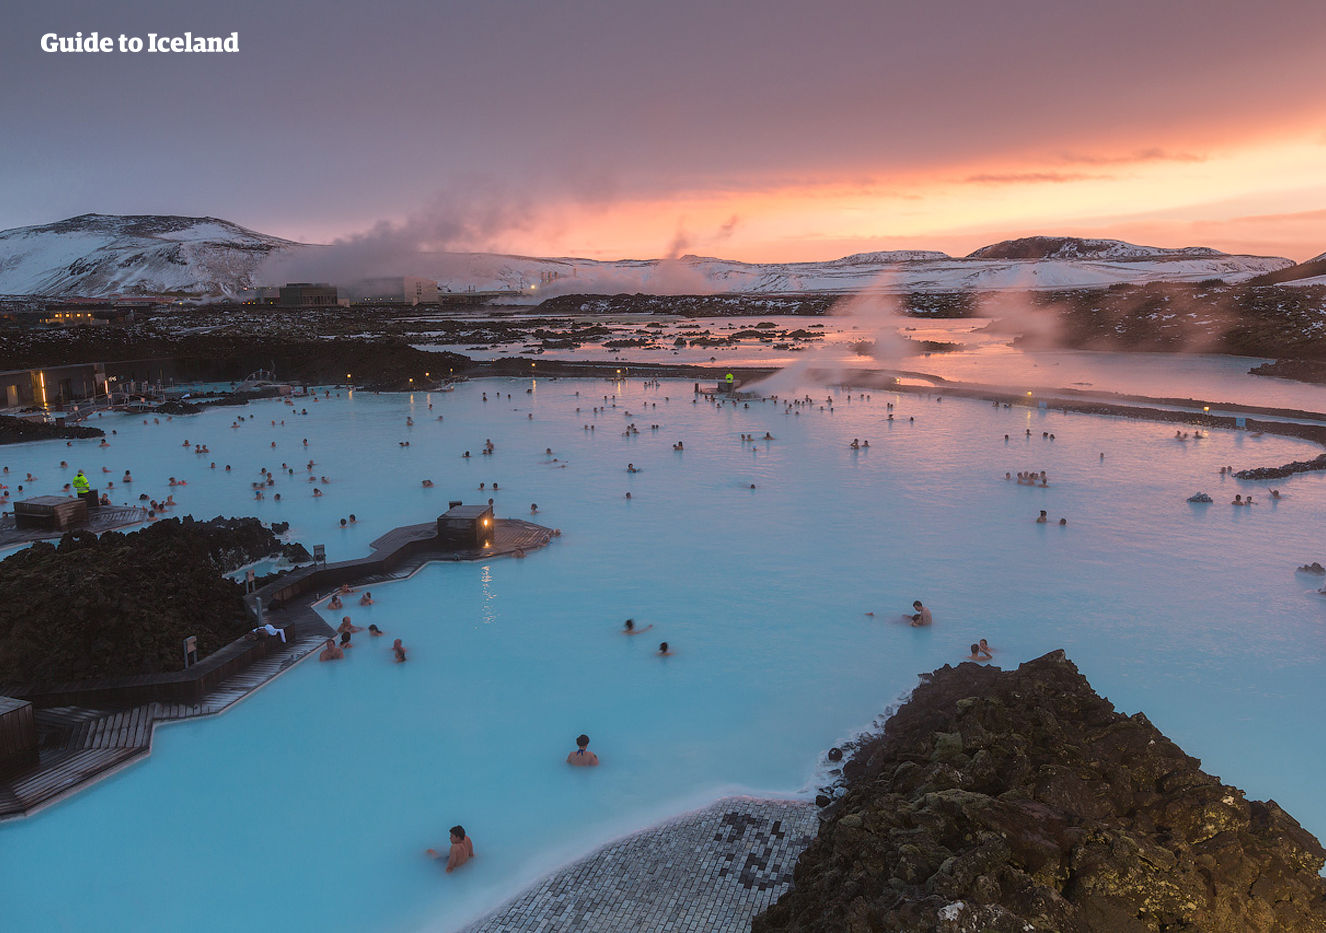 Guided 10 Day Summer Tour of the Complete Ring Road of Iceland with Free Days in Reykjavik - day 1